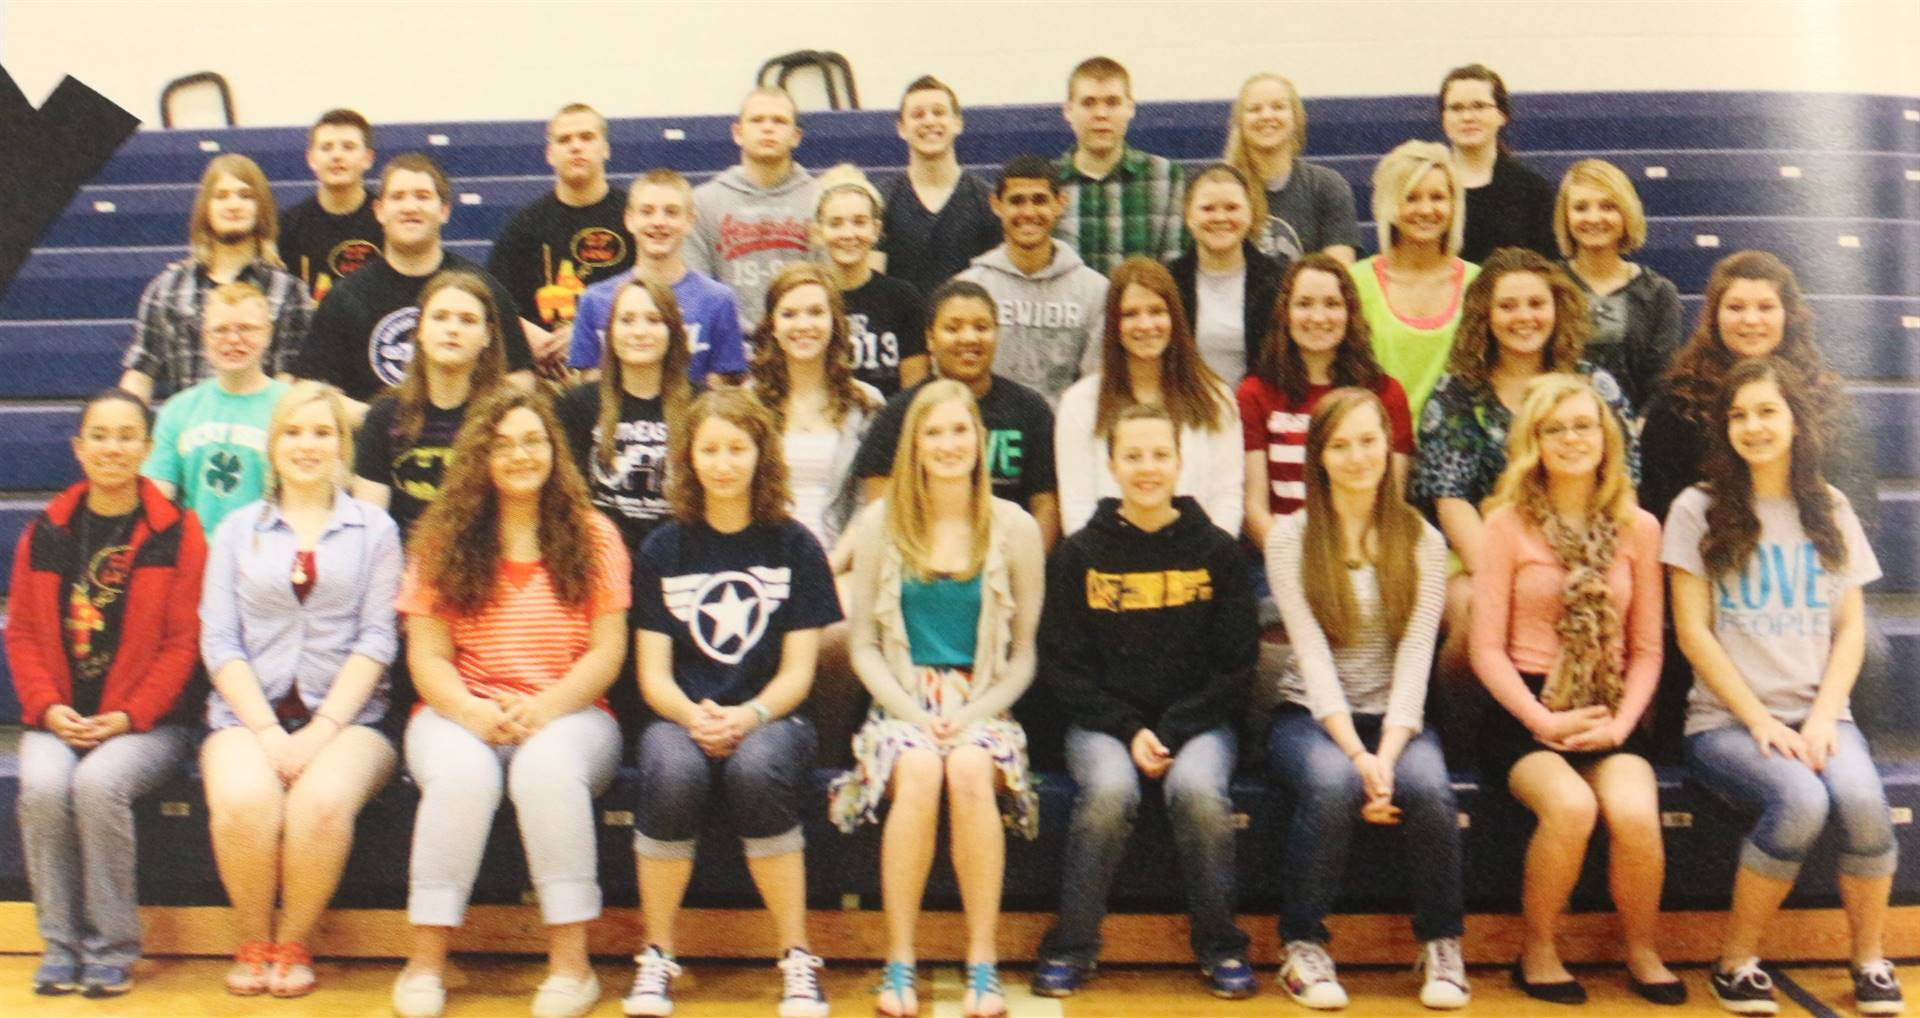 2013 National Honor Society